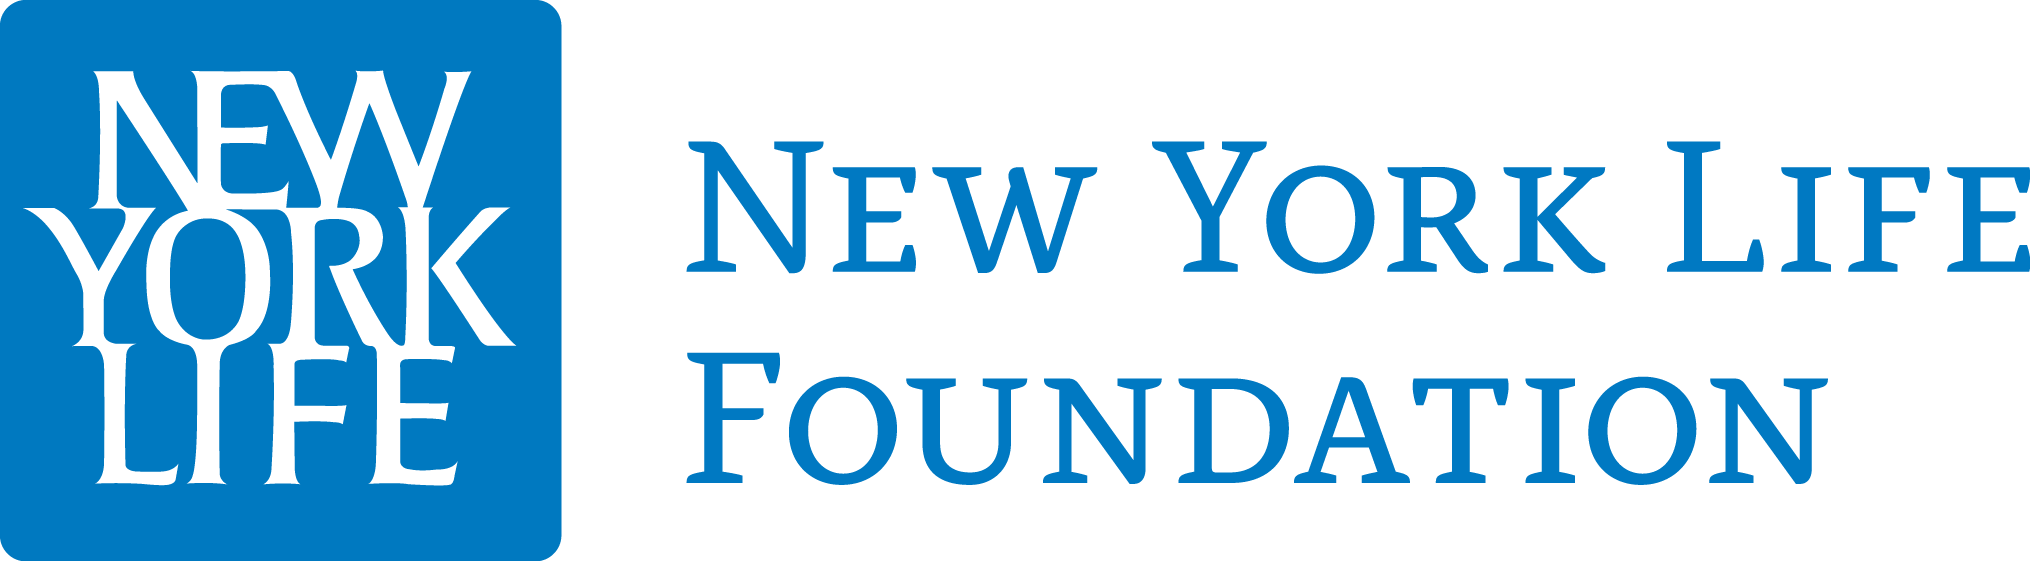 New York Life Foundation  Shared Grief. Arizona Christian Colleges Skype Sms Gateway. Community Colleges In Erie Pa. Adn To Msn Bridge Program Flu Symptoms Chills. Software Development Project Management Software. Free Online Medical Billing Cheap Home Loan. Maytag Refrigerator Repairs Garage Door Inc. Dodge 2500 Transmission Problems. Order Processing Software 401k Gold Rollover